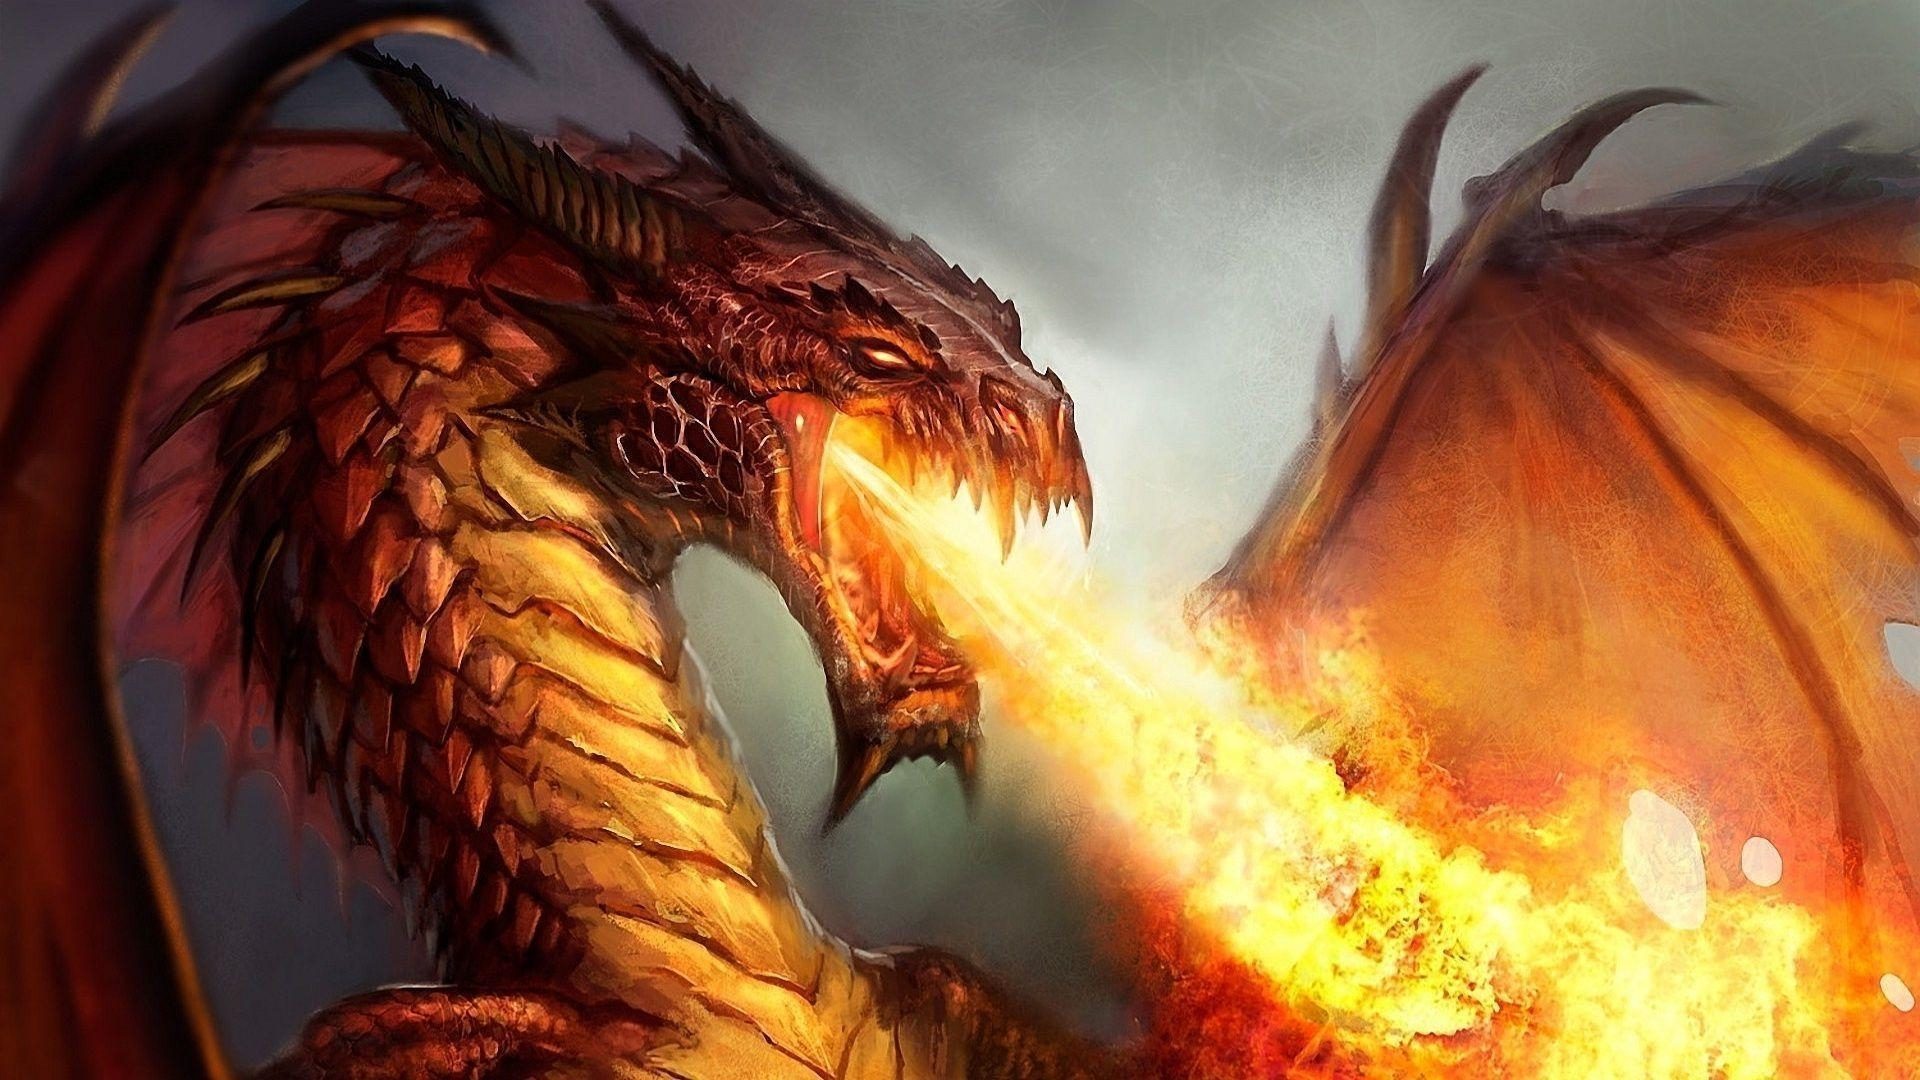 Title : fire dragon wallpapers – wallpaper cave. Dimension : 1920 x 1080. File Type : JPG/JPEG